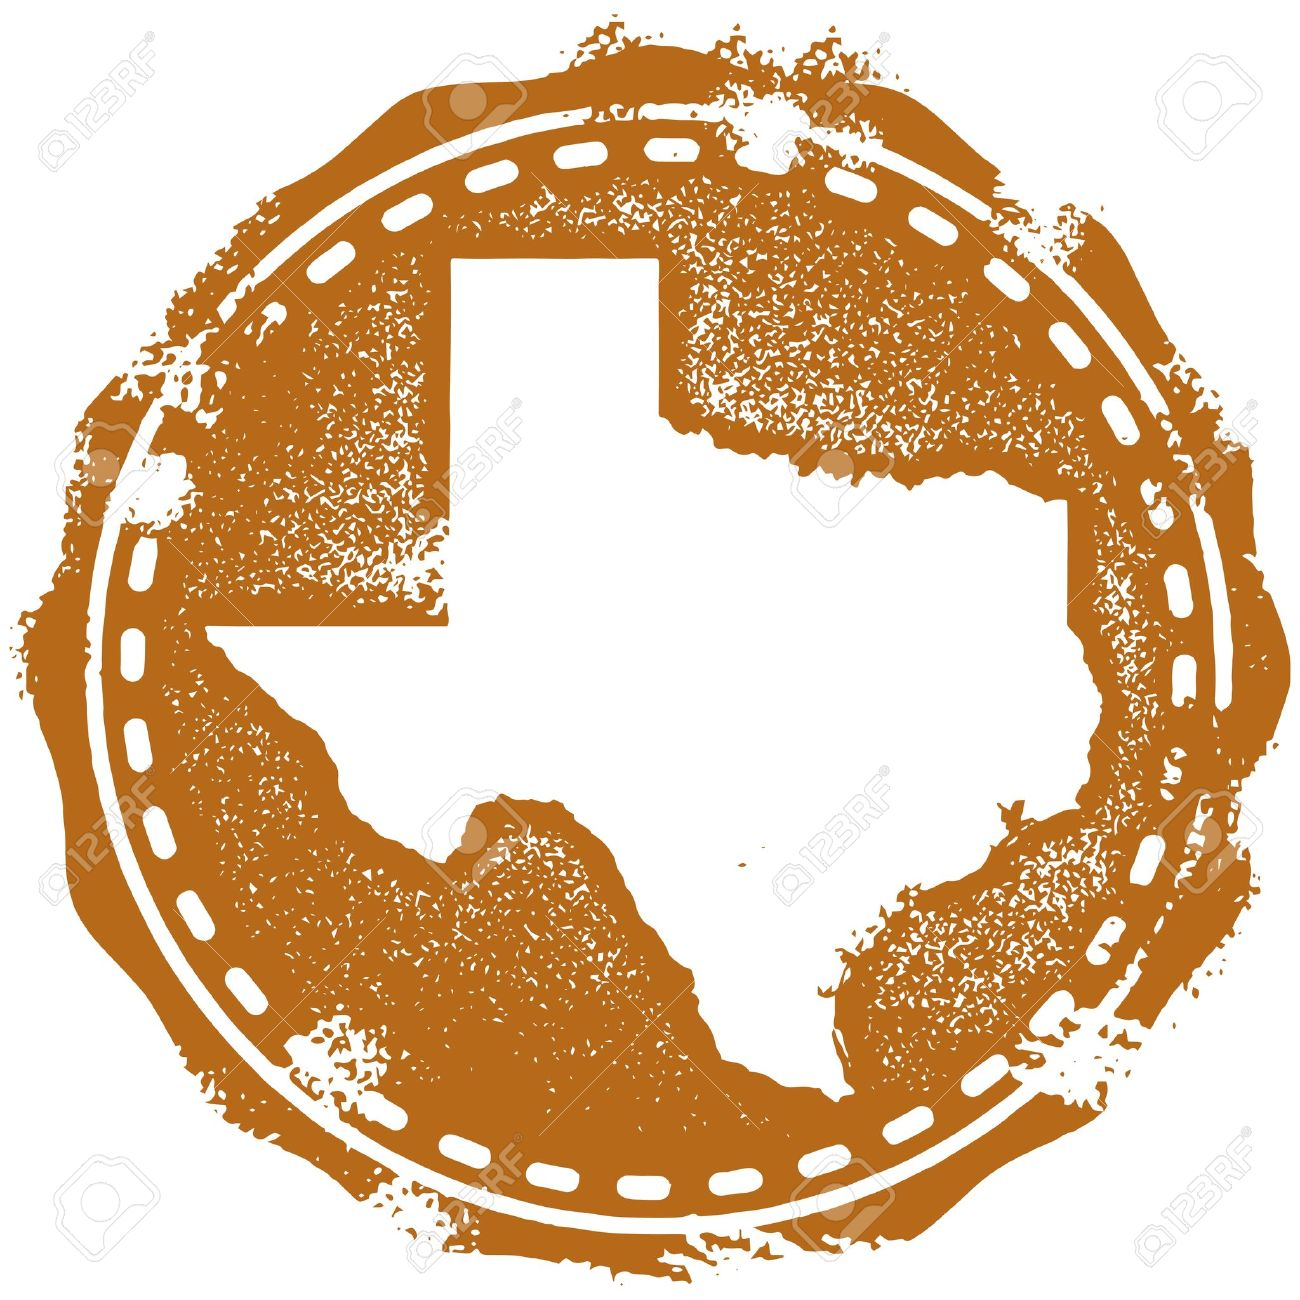 State of Texas Vector Logo State Vintage Texas State